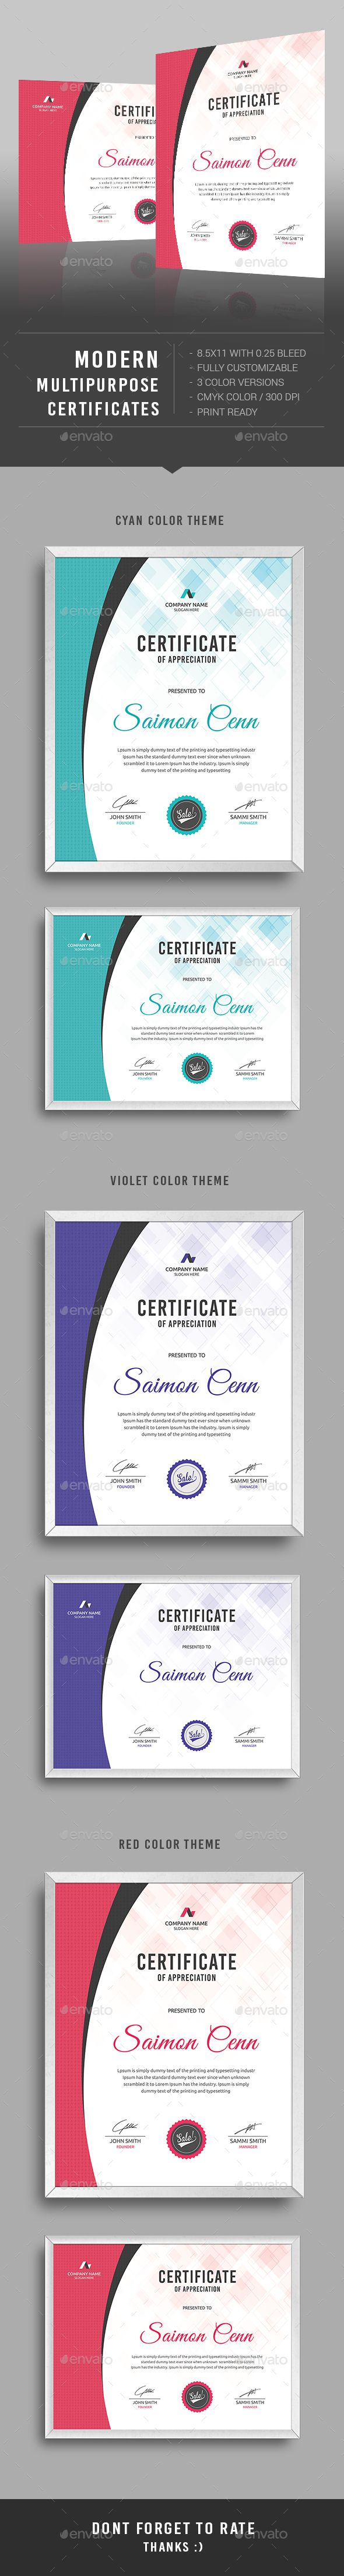 #Certificate - #Certificates #Stationery Download here: https://graphicriver.net/item/certificate/12814074?ref=alena994